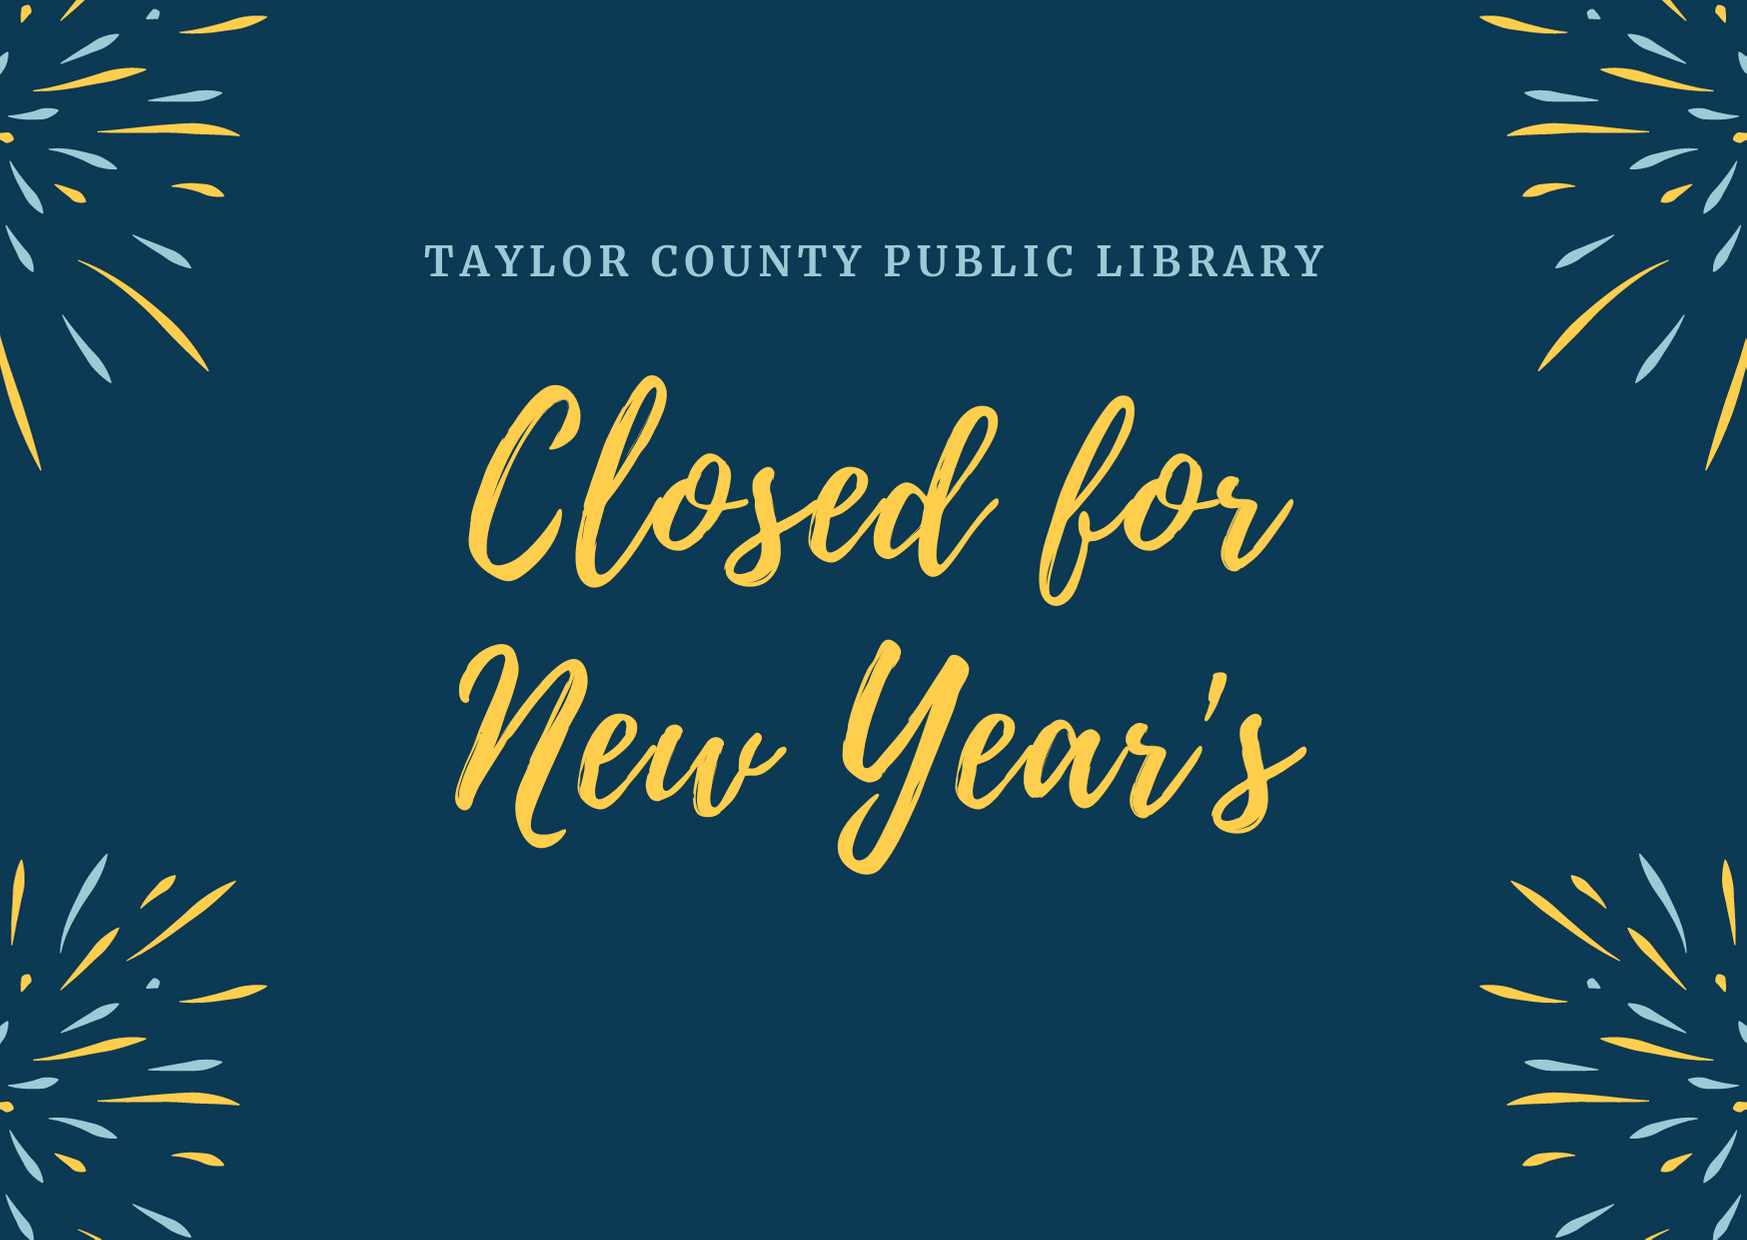 Closed for New Year